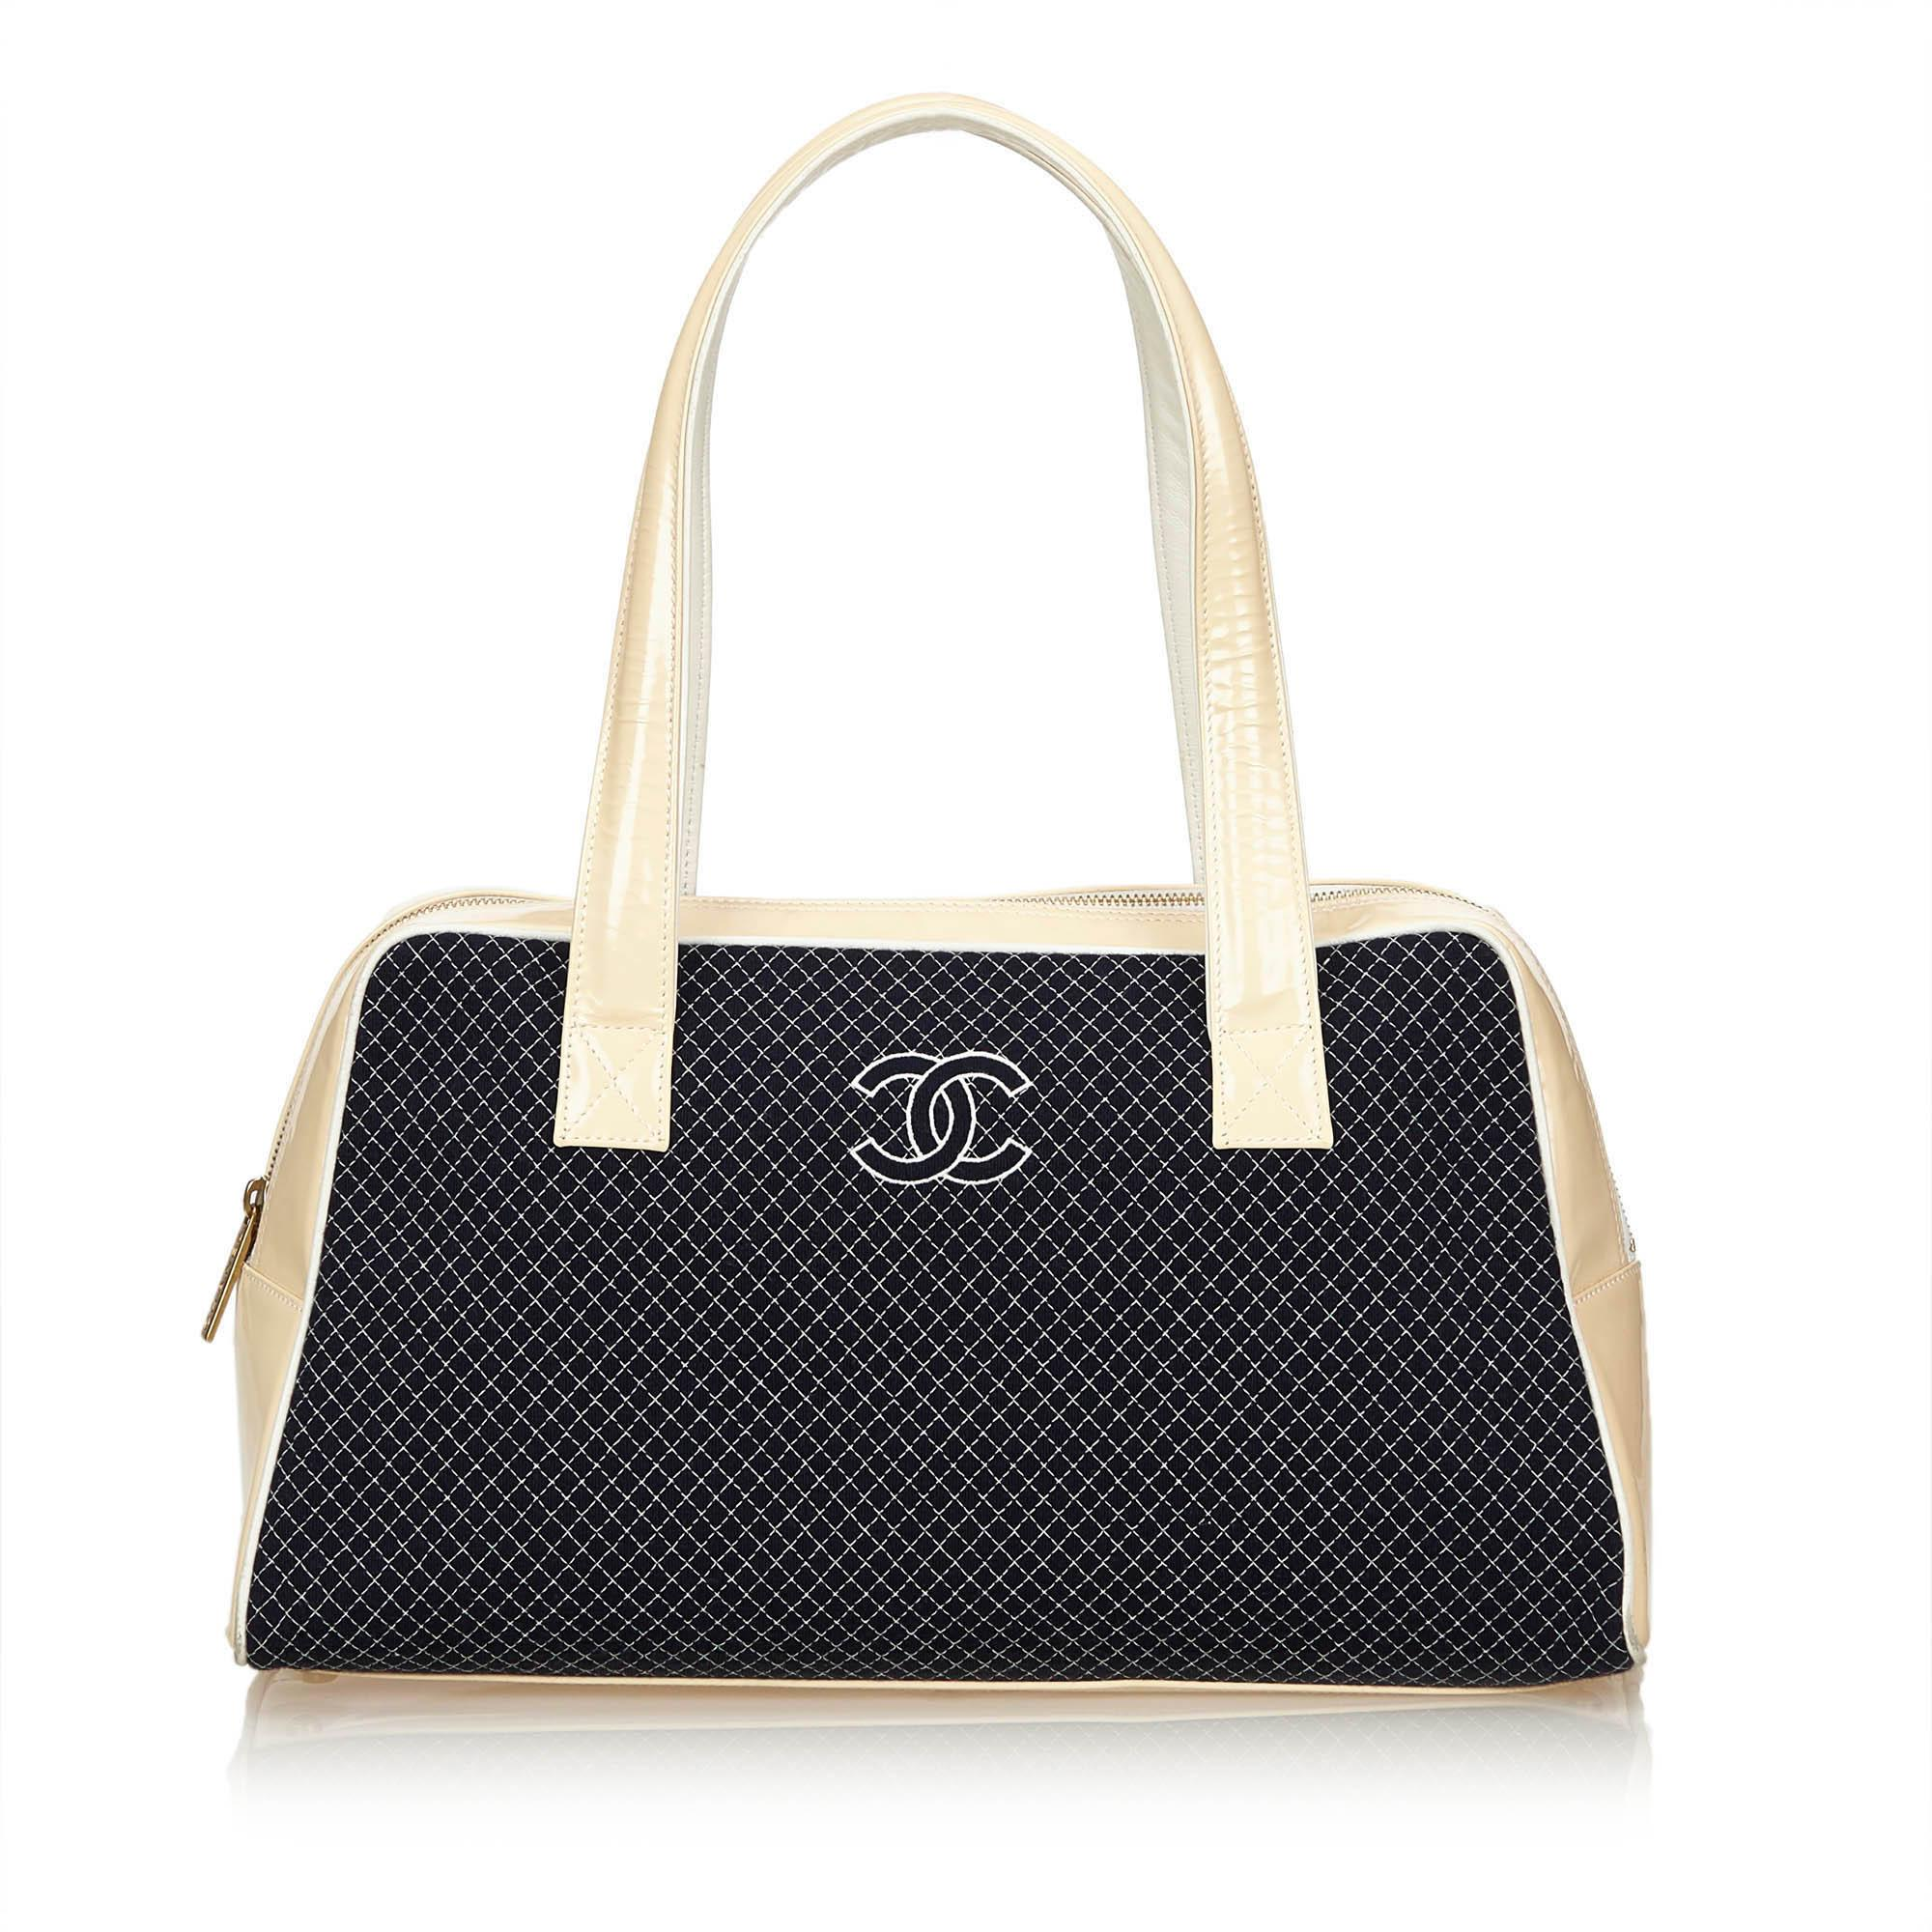 3fce828fdc23 Chanel. Women's Blue Cotton Shoulder Bag. $896 From Orchard Mile